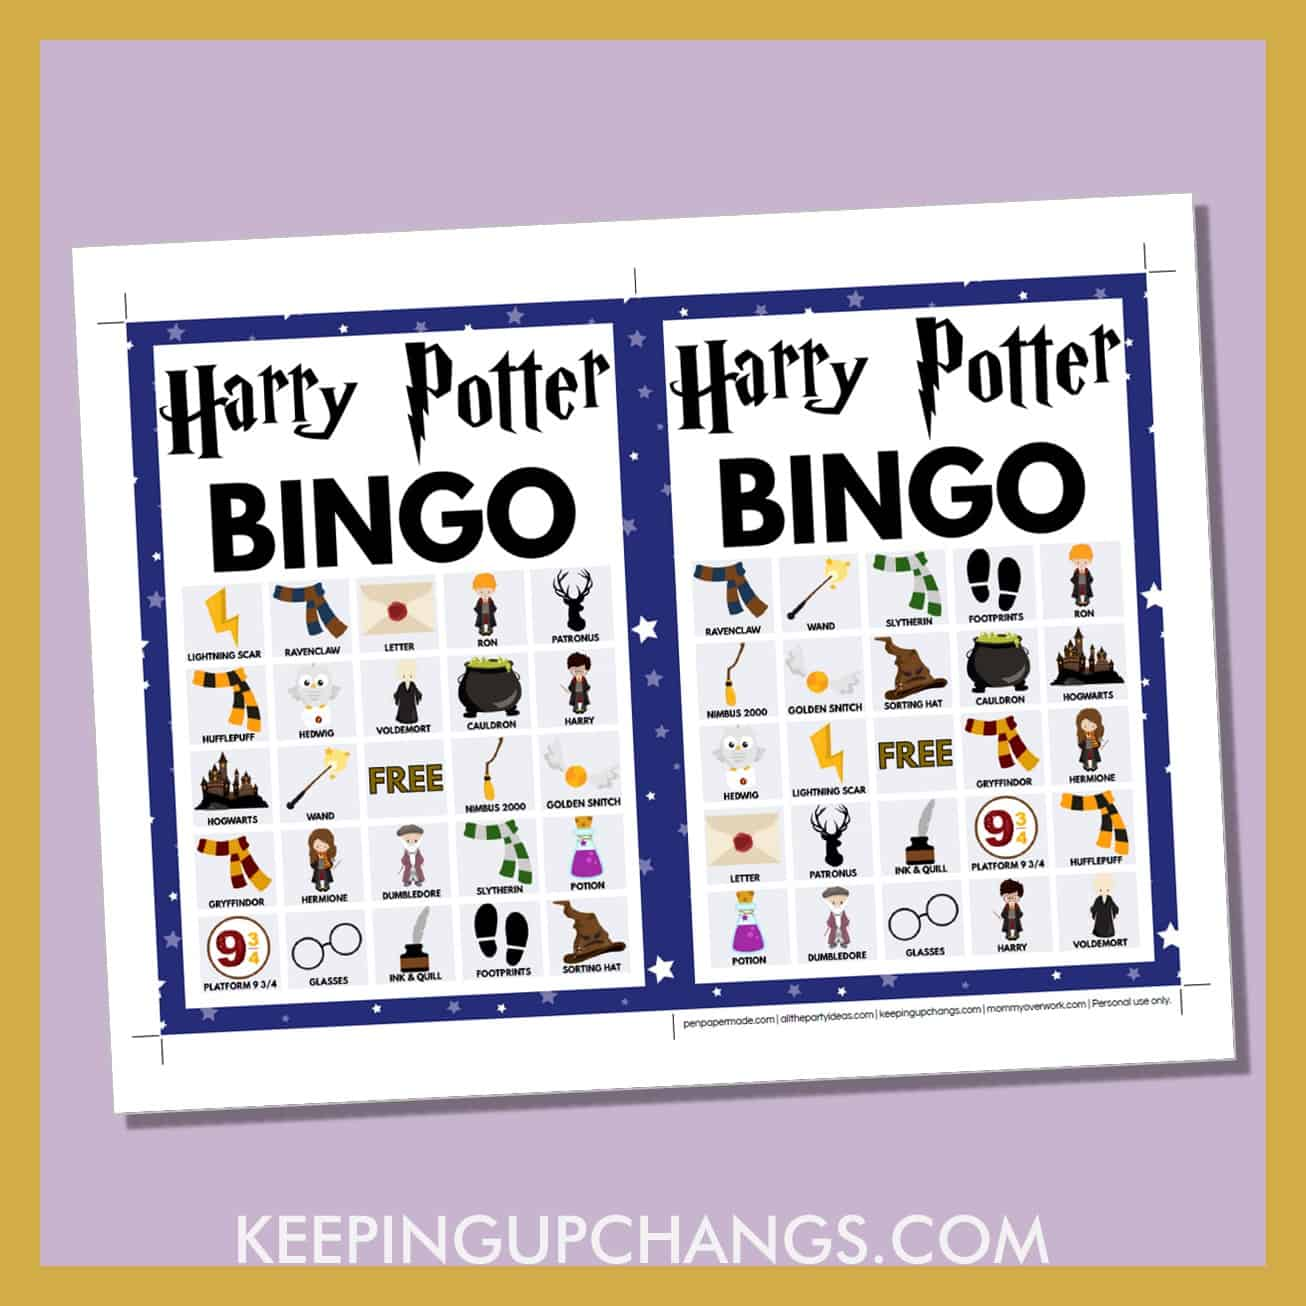 free harry potter bingo card 5x5 5x7 game boards with images and text words.